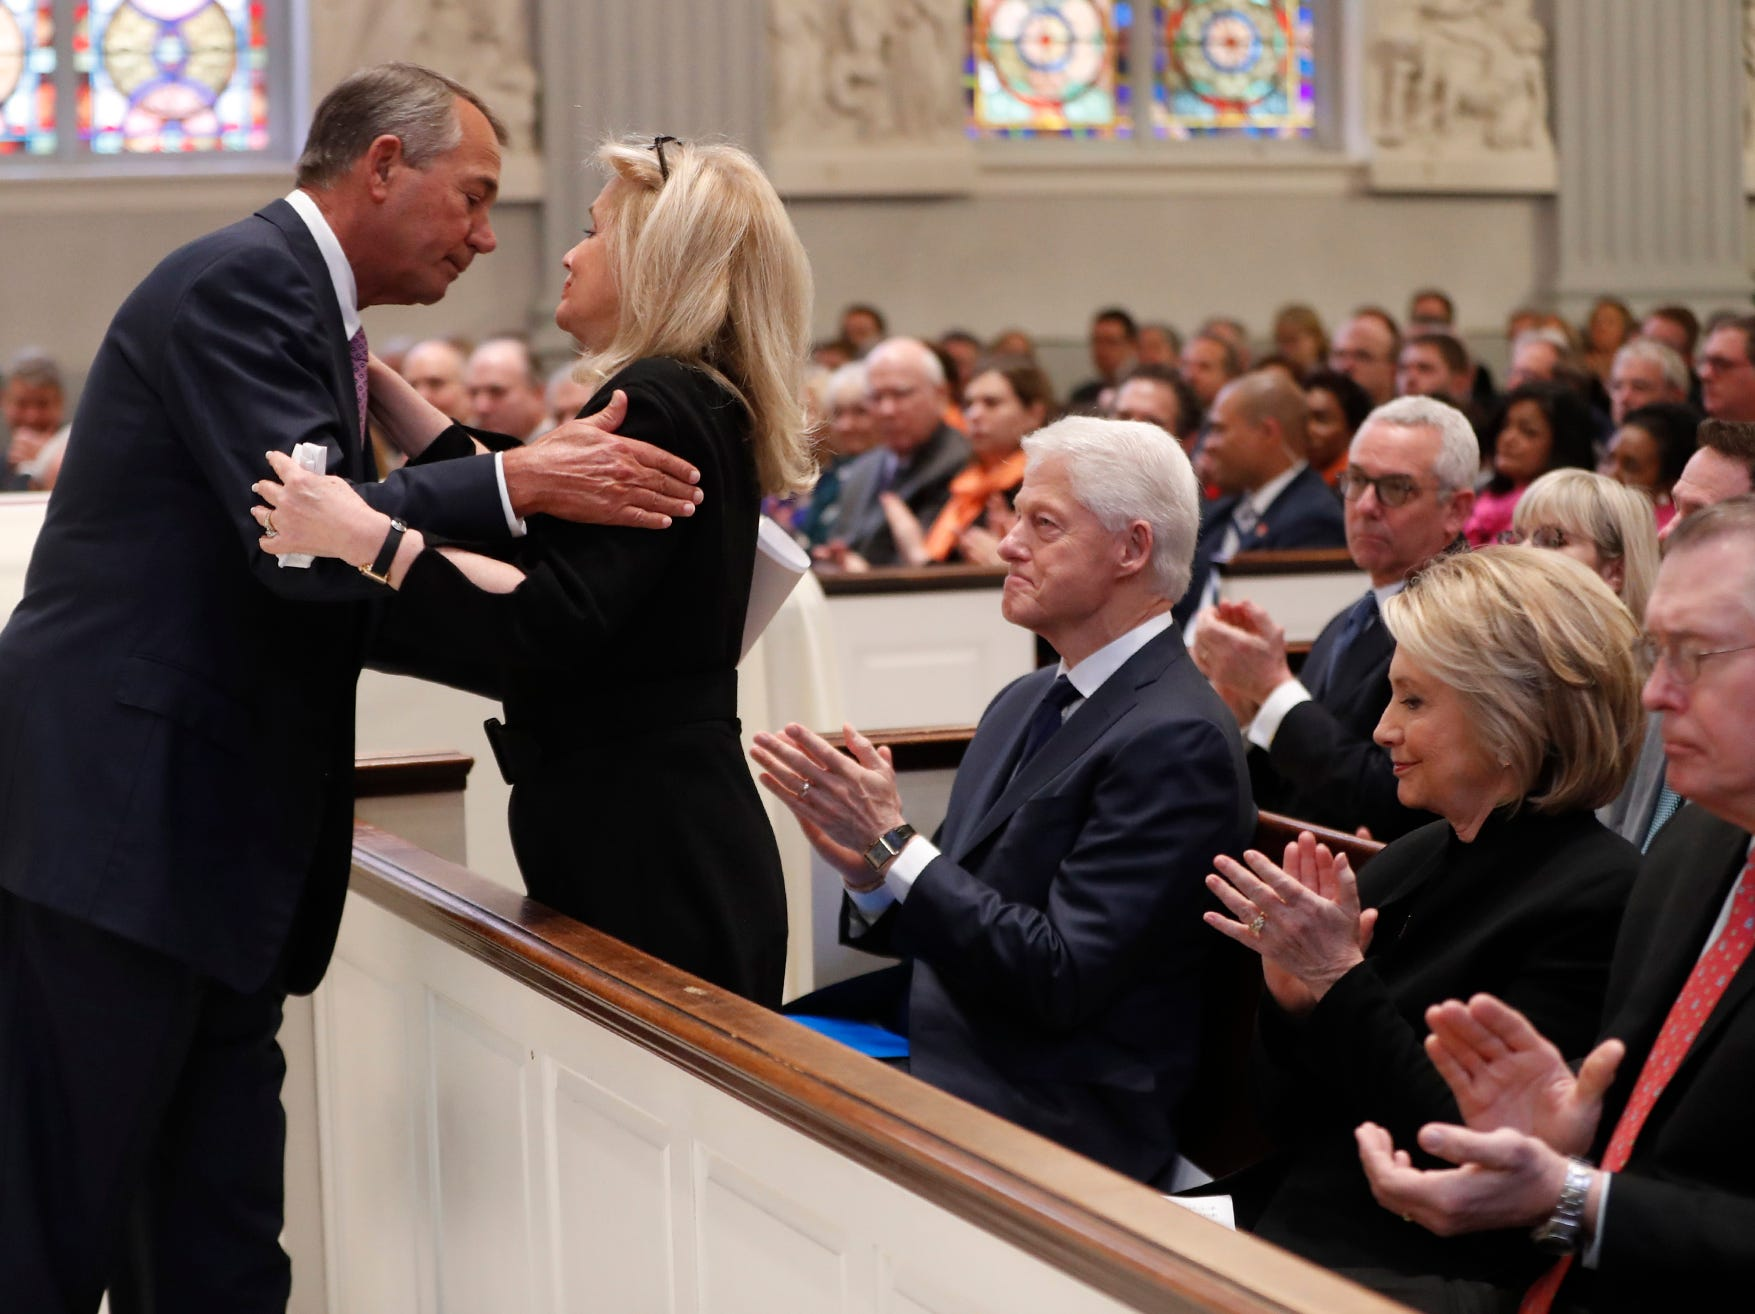 Former House Speaker John Boehner hugs Rep. Debbie Dingell, D-Dearborn, during the funeral for her husband, former Rep. John Dingell, Thursday, Feb. 14, 2019 at Holy Trinity Catholic Church in Washington. Dingell, who represented southeast Michigan for 59 years in the House of Representatives, died last week at age 92. Seated are former President Bill Clinton and former Secretary of State Hillary Clinton.